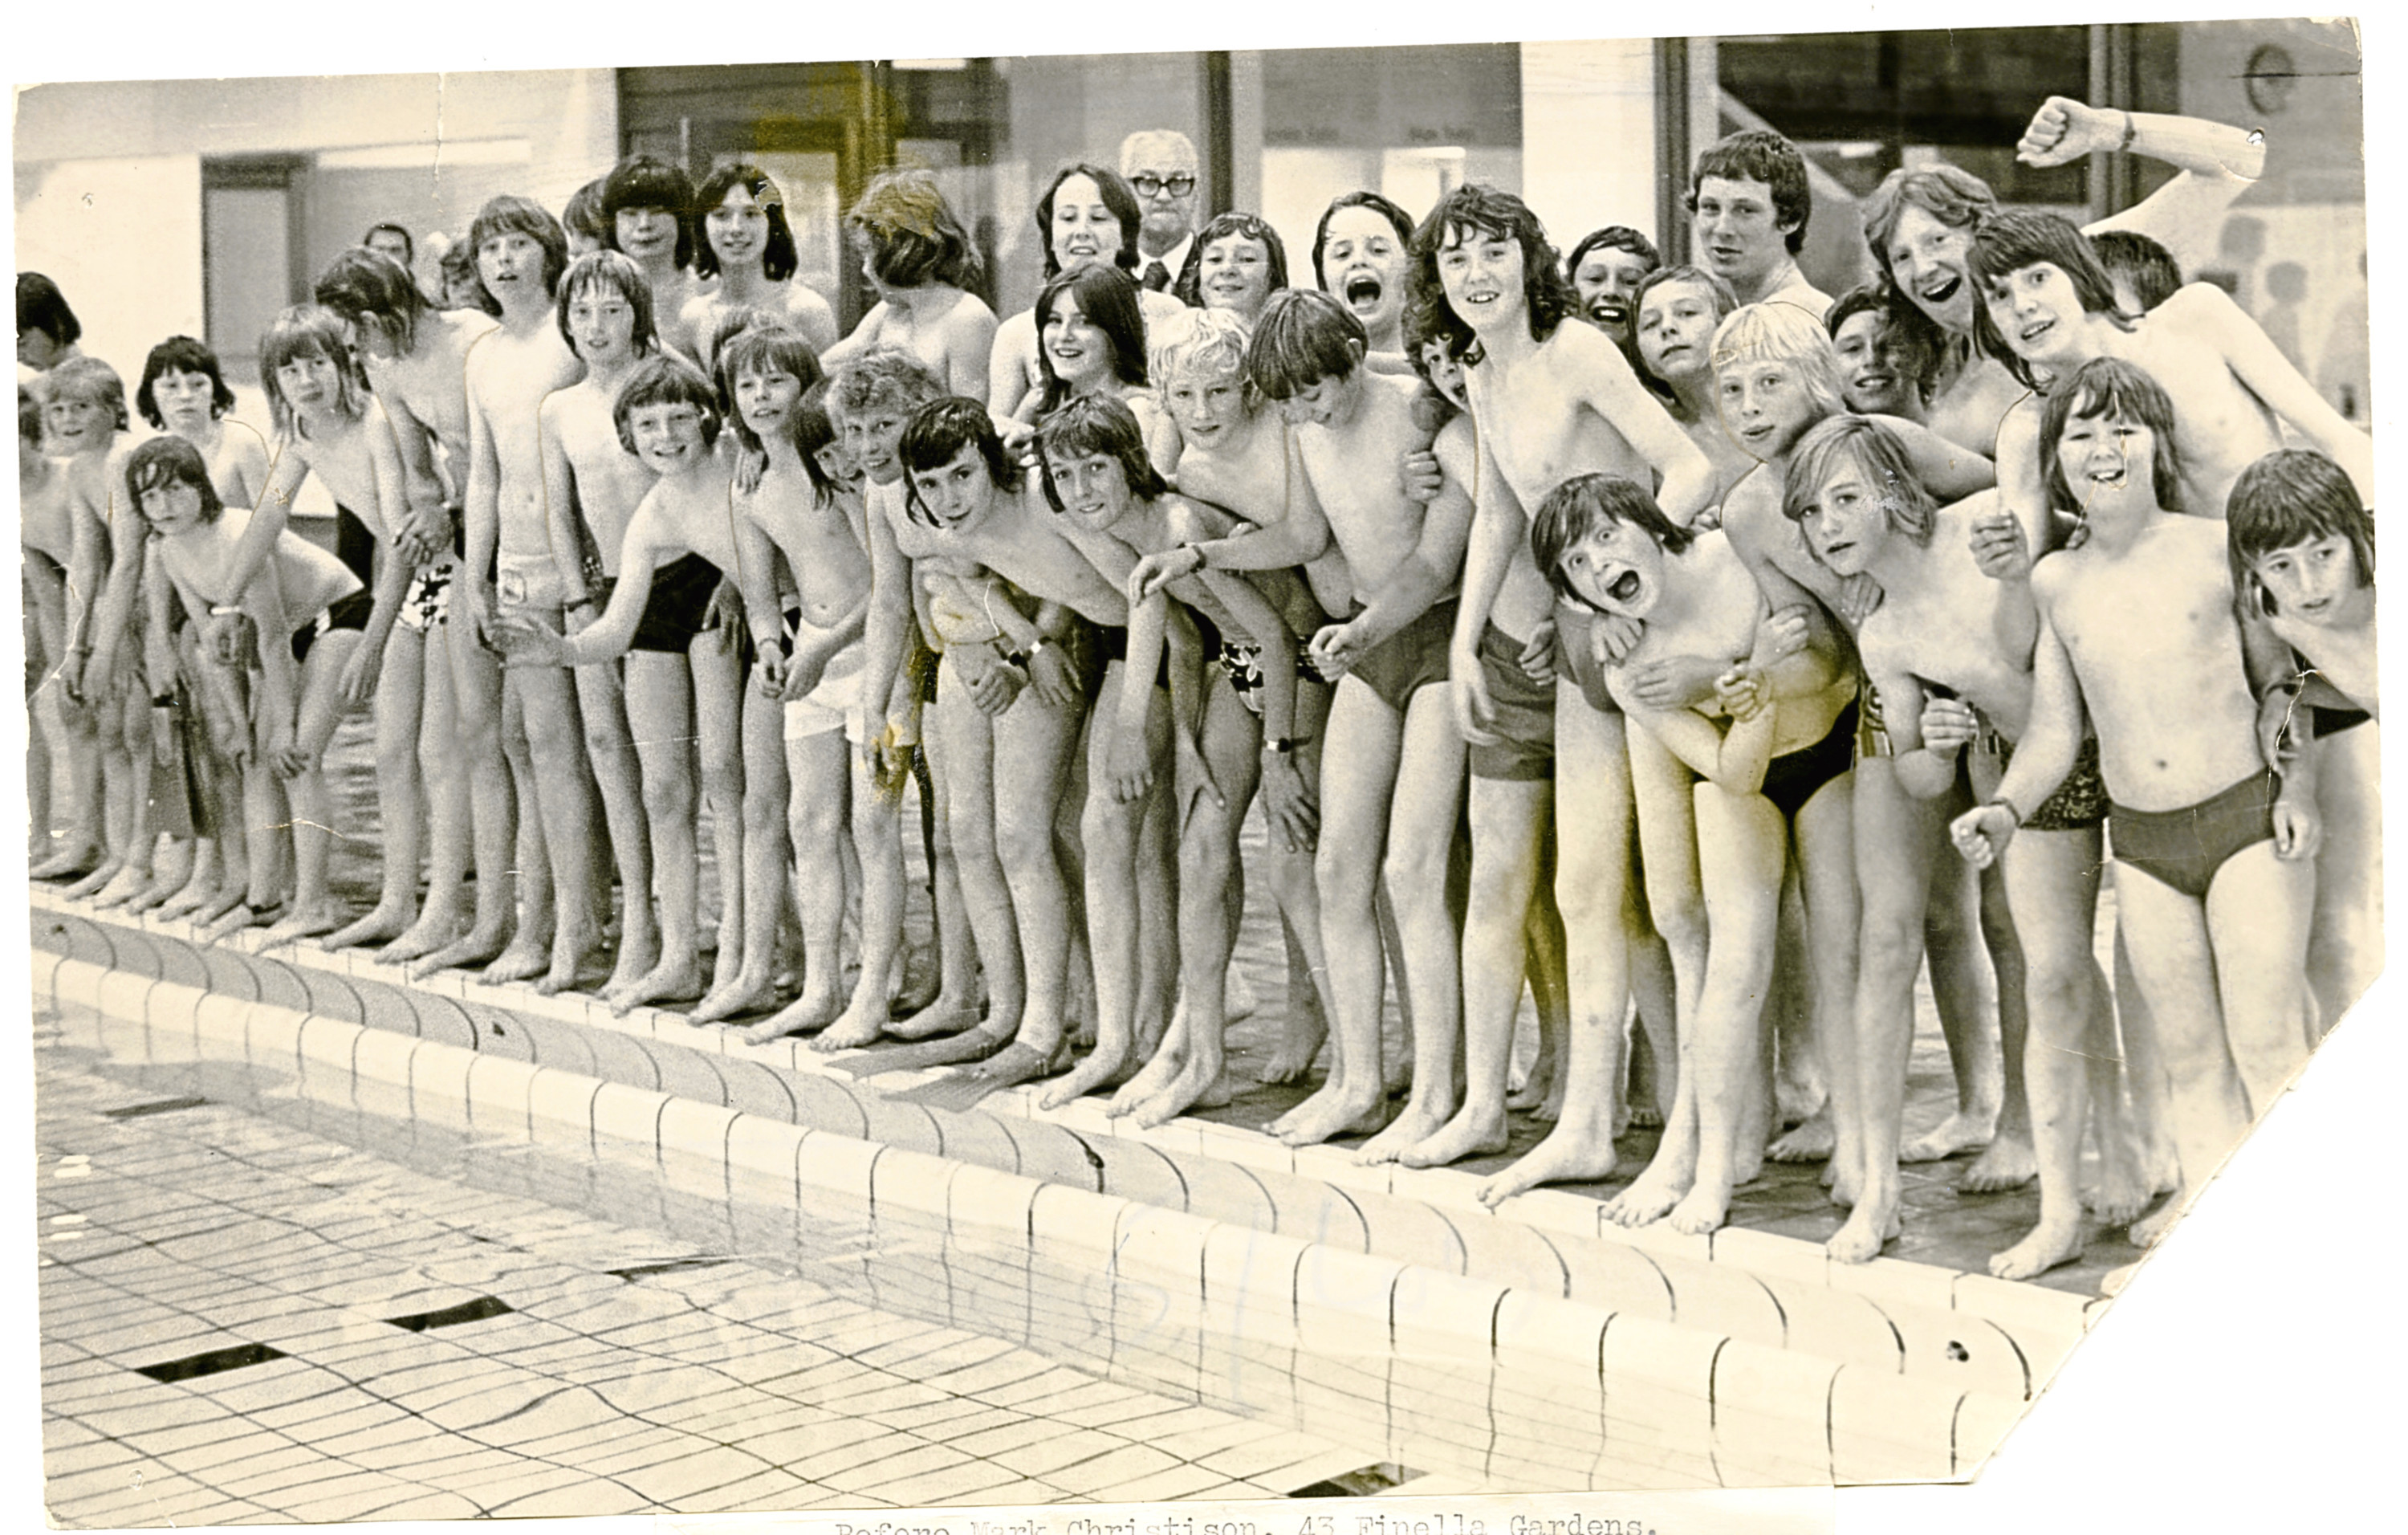 Boys Group at Dundee Baths. Photograph showing a group of boys at Dundee Swimming Baths, eagerly awaiting to jump in the pool. July 1974. H250 1974-07-00 Boys Group at Dundee Baths (C)DCT Dundonian. Used in T&P 15 July 1974, 8 July 1999.